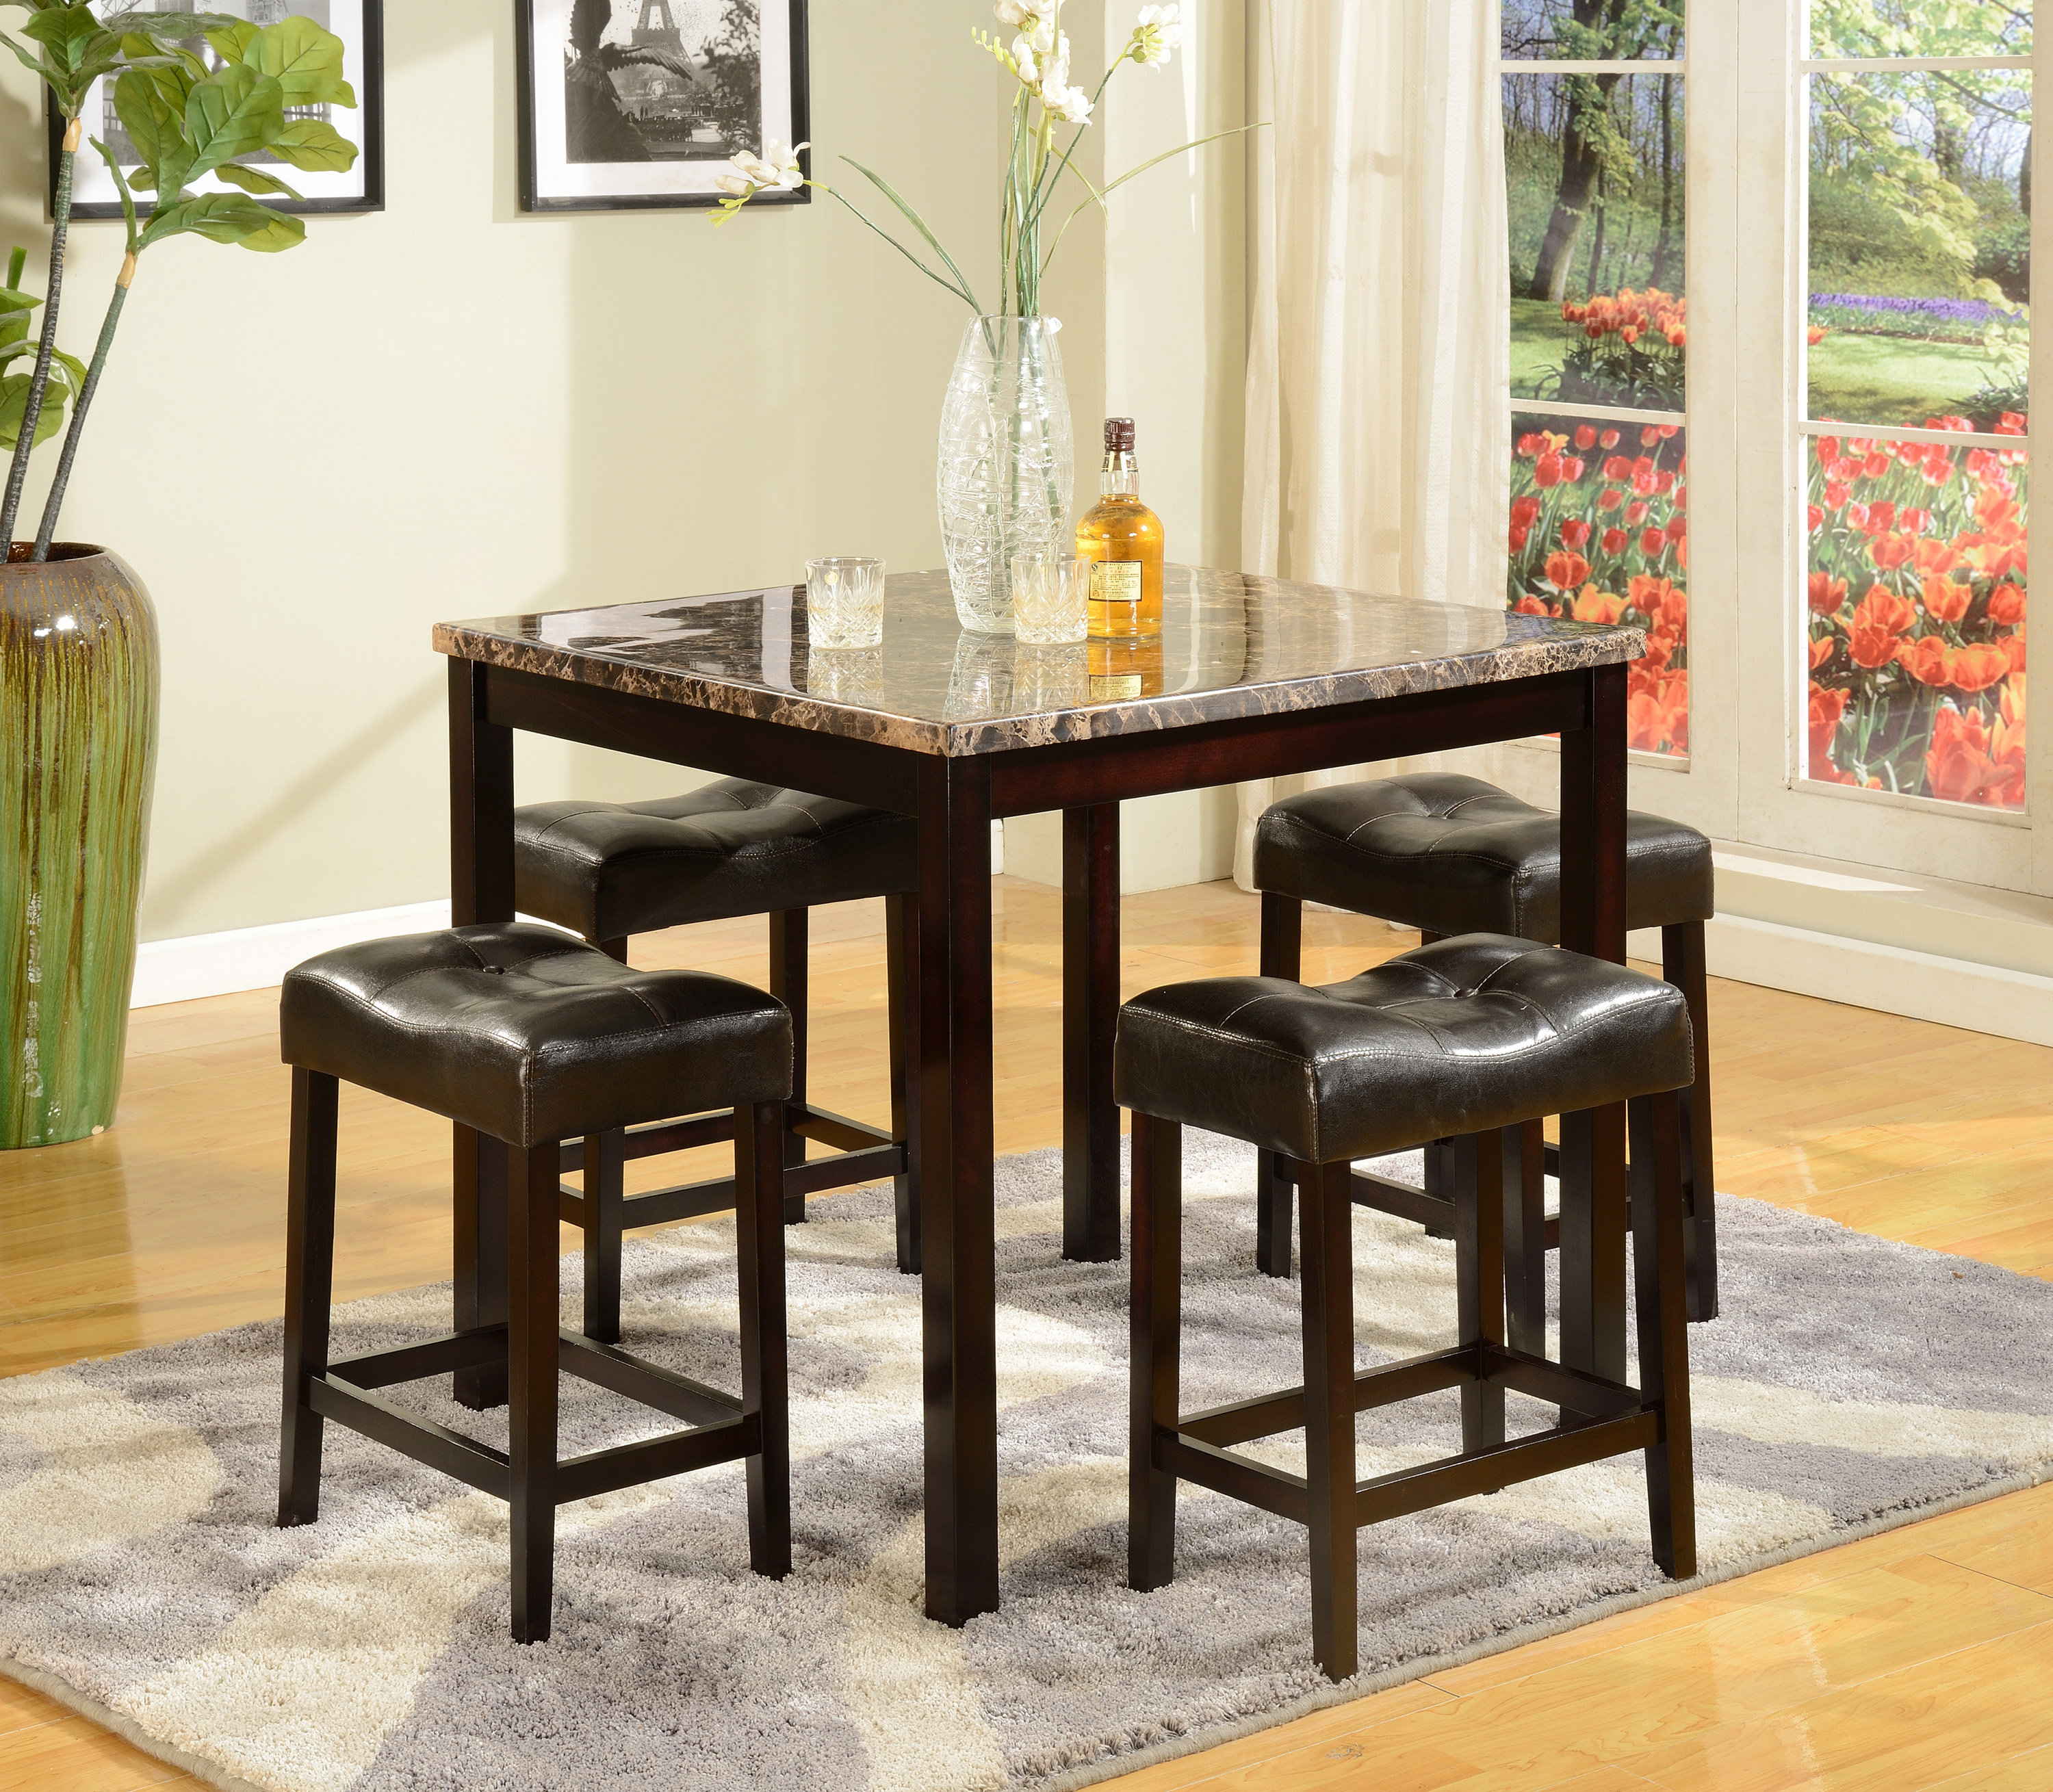 Octavia 5 Piece Counter Height Dining Set Regarding Recent Askern 3 Piece Counter Height Dining Sets (Set Of 3) (View 11 of 20)